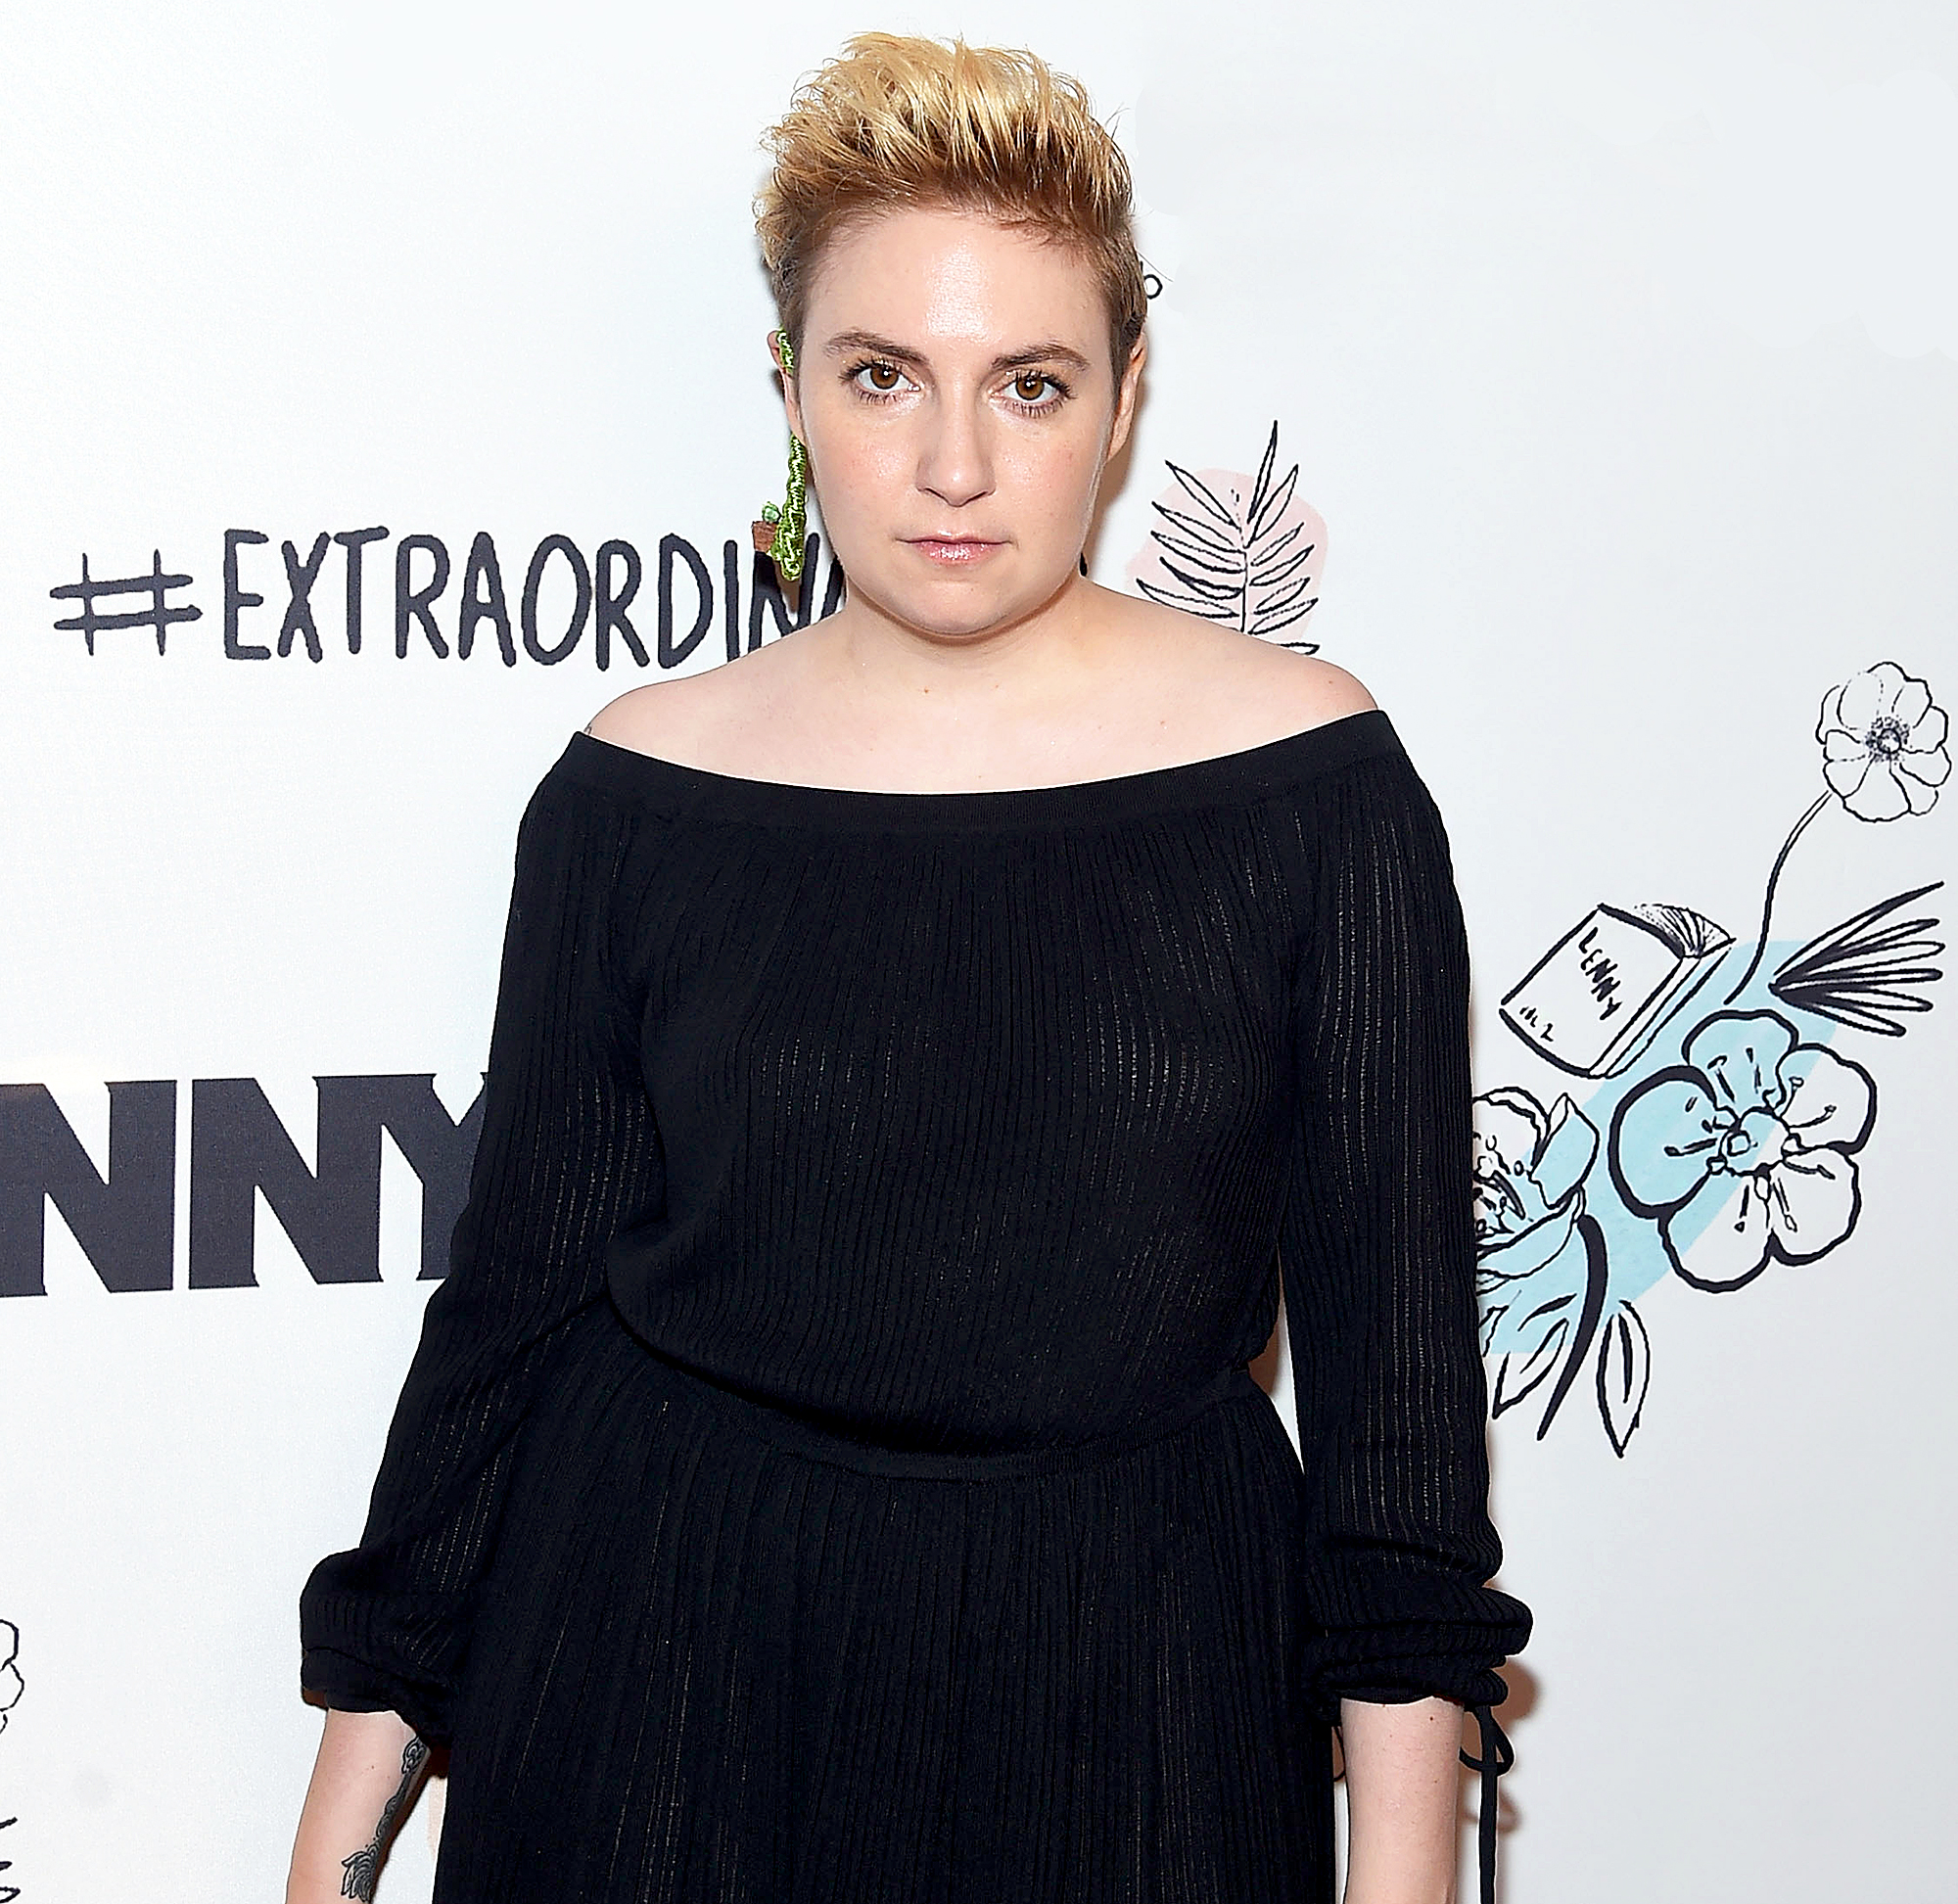 Former Lenny Letter writer accuses Lena Dunham of